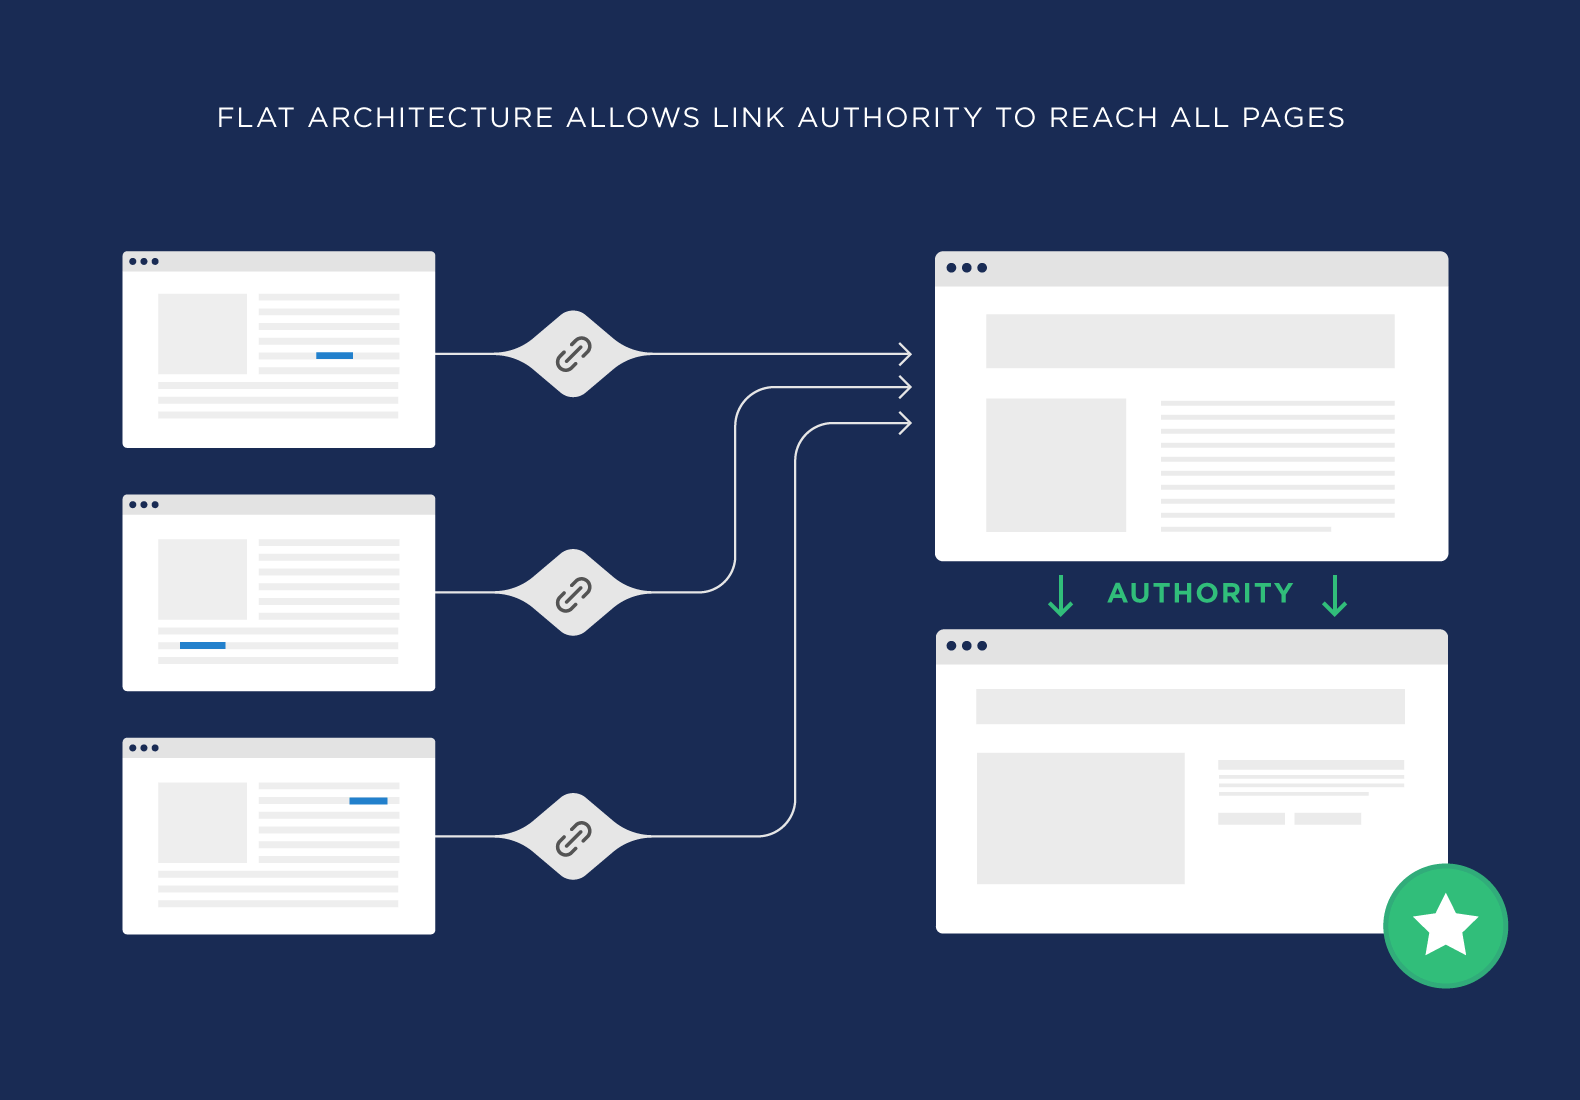 Flat architecture allows link authority to reach all pages